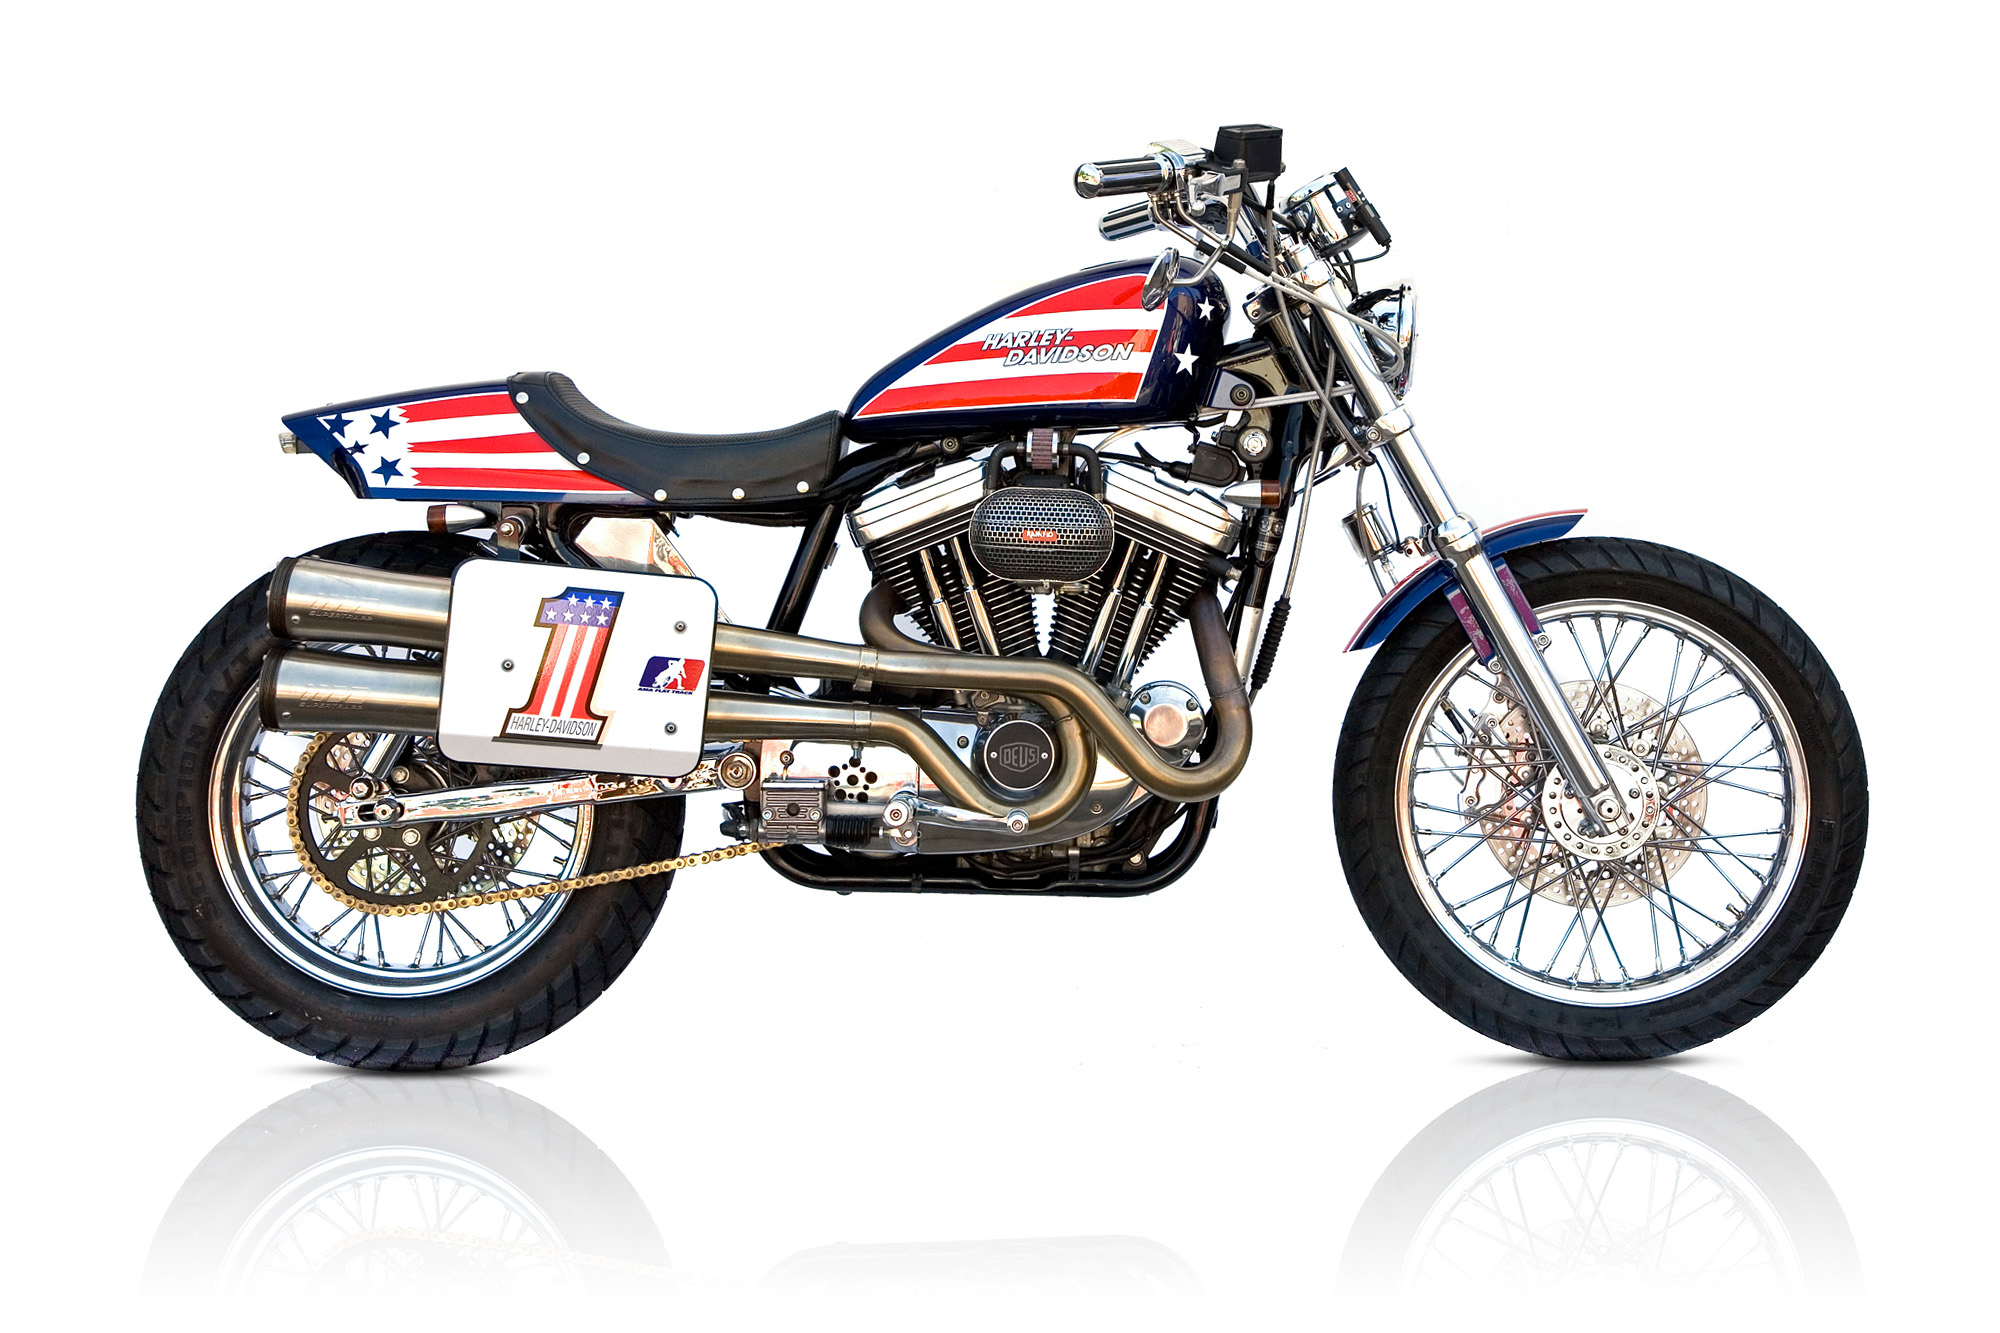 2000x1333 - Evel Knievel Wallpapers 20